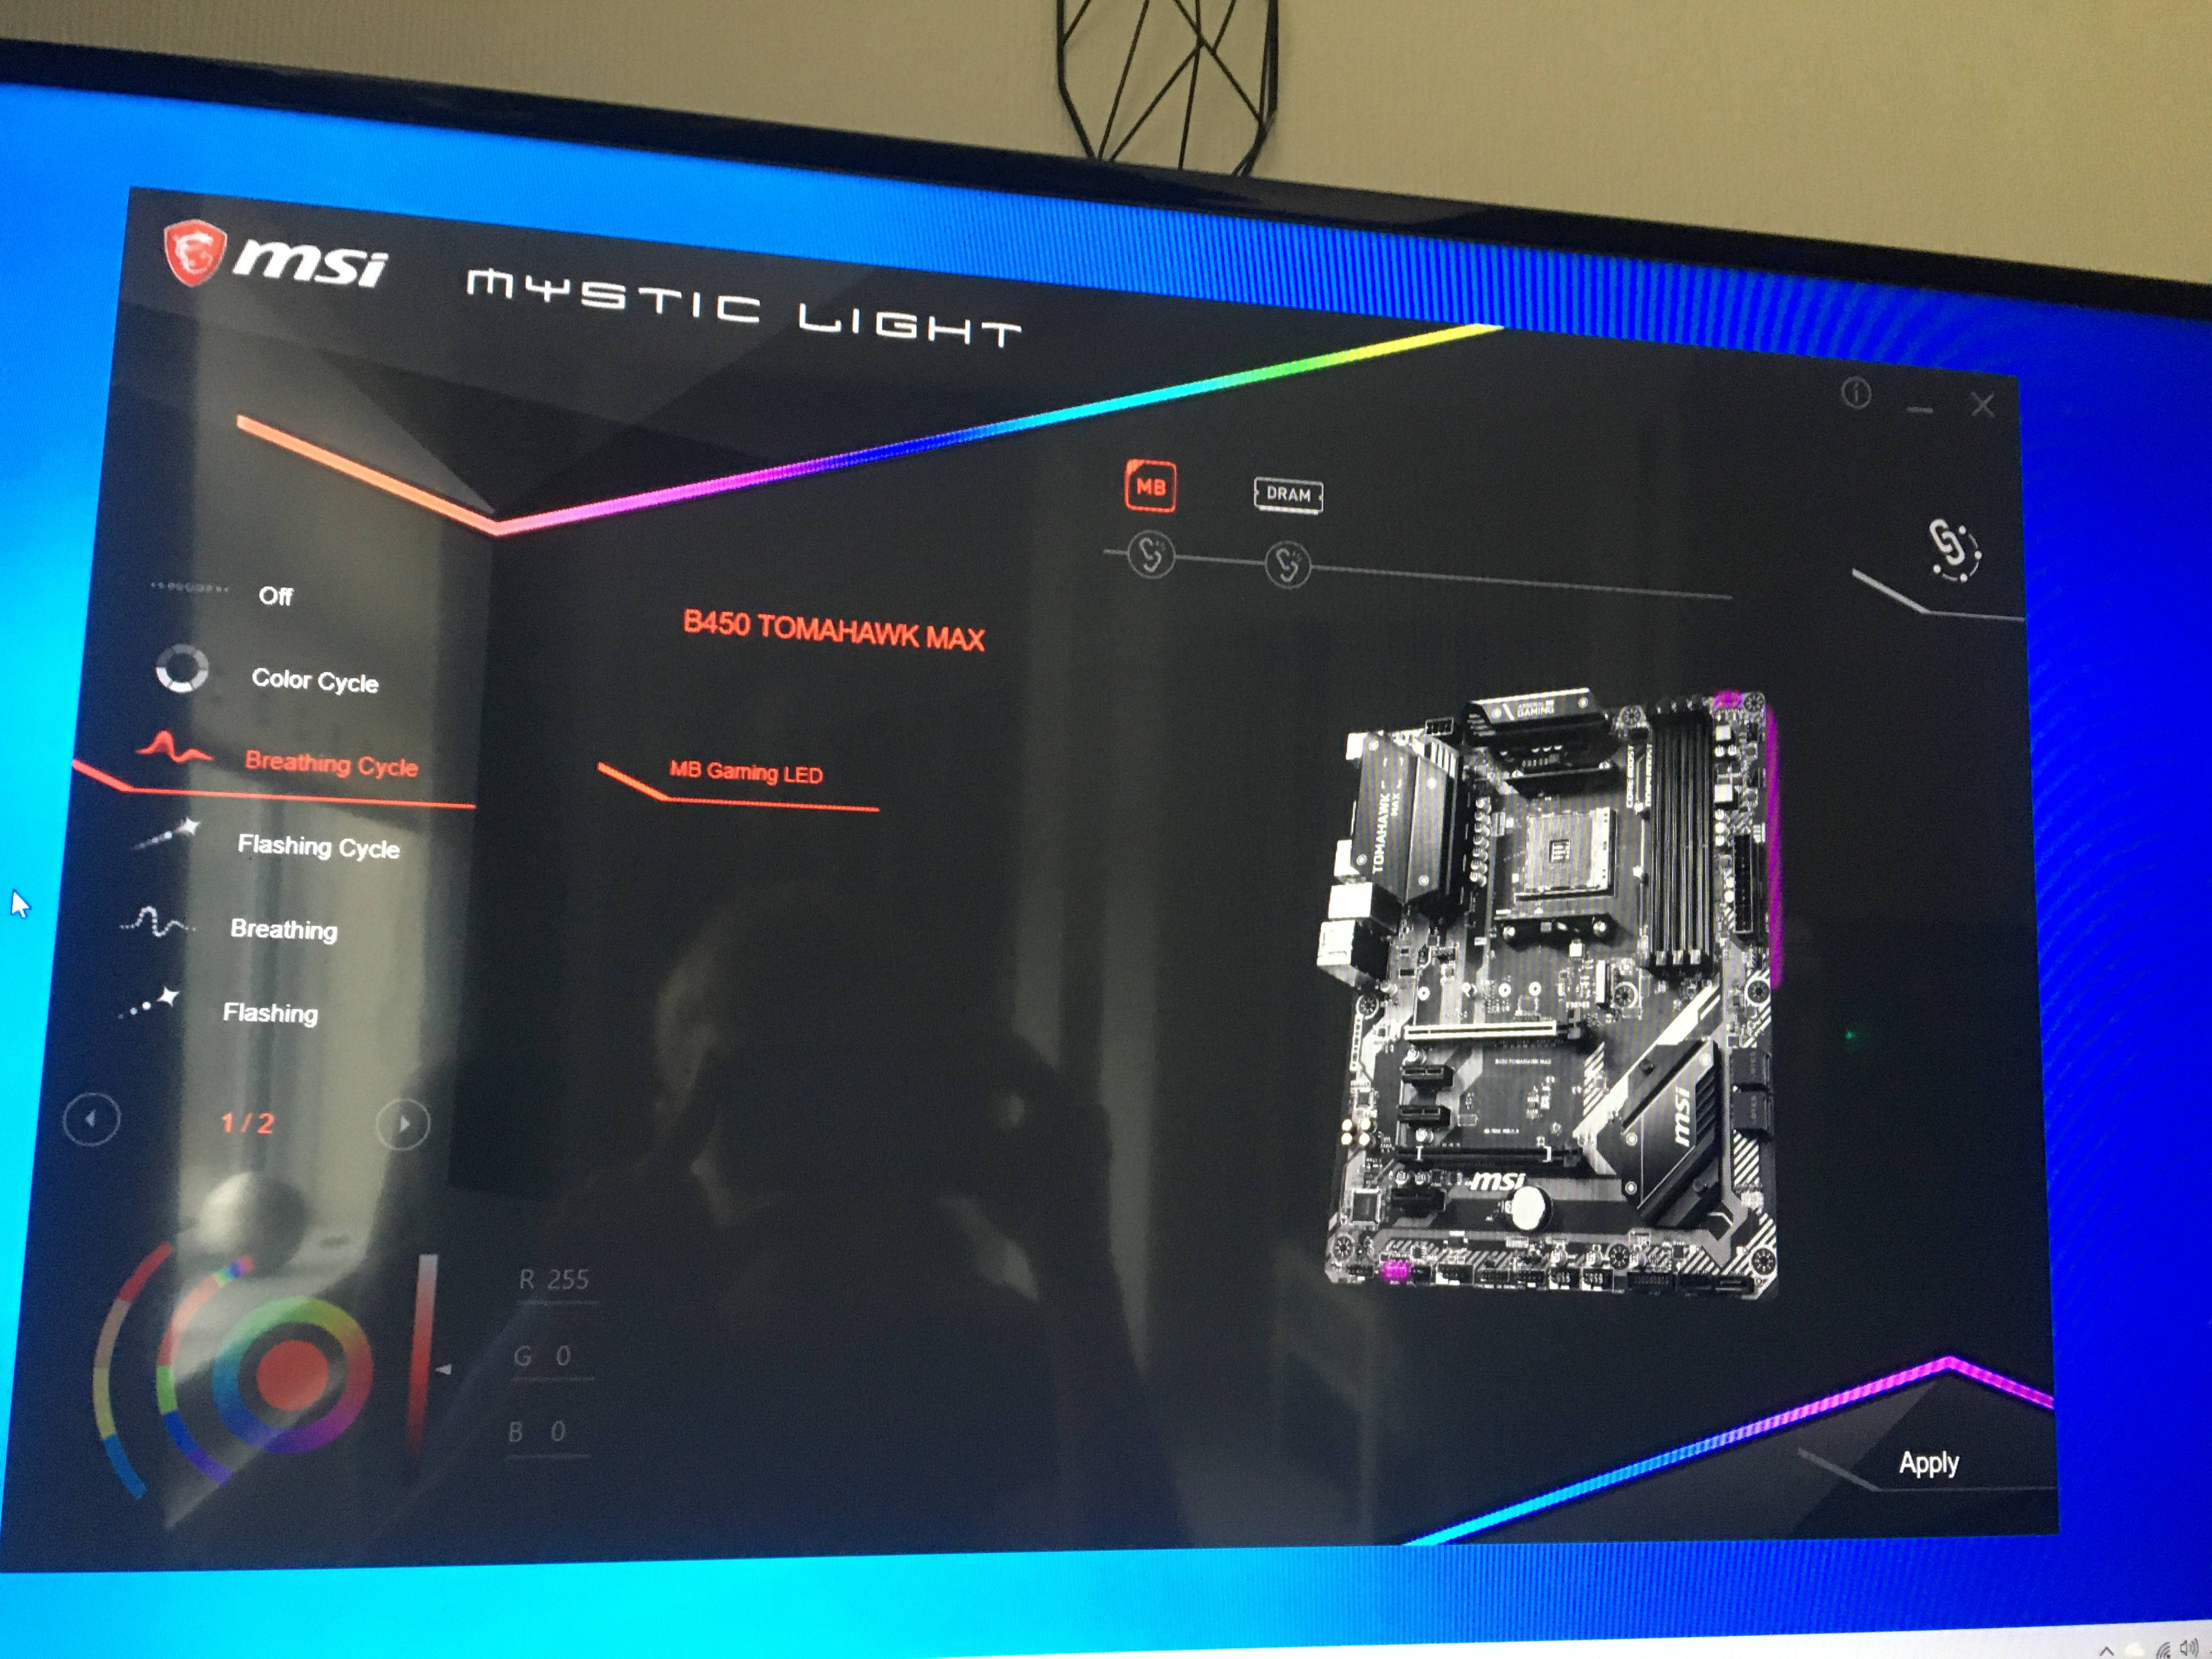 Fans Not Detected In Mystic Light Cpus Motherboards And Memory Linus Tech Tips Gk50 keyboard not supported by mystic light. fans not detected in mystic light